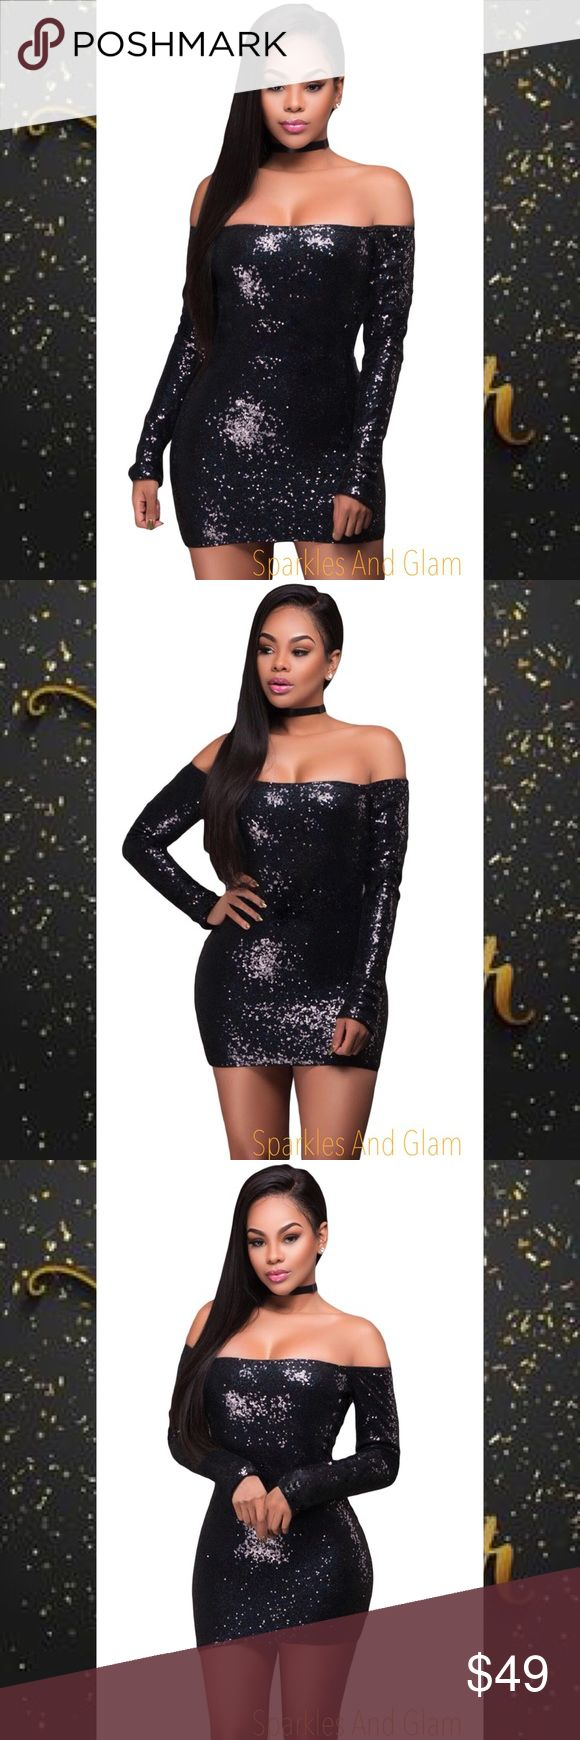 Black Sequins NYE Dress  This stunning sequin dress is perfect for any party activities! The mini sequins are perfect! Sexy off-shoulder design with a little stretch for a comfortable wear and a back zipper closure. Style it with heels and a fabulous rhinestone choker you're good to go !  Fast Shipping Smoke Free Pet Free Home Dresses Mini